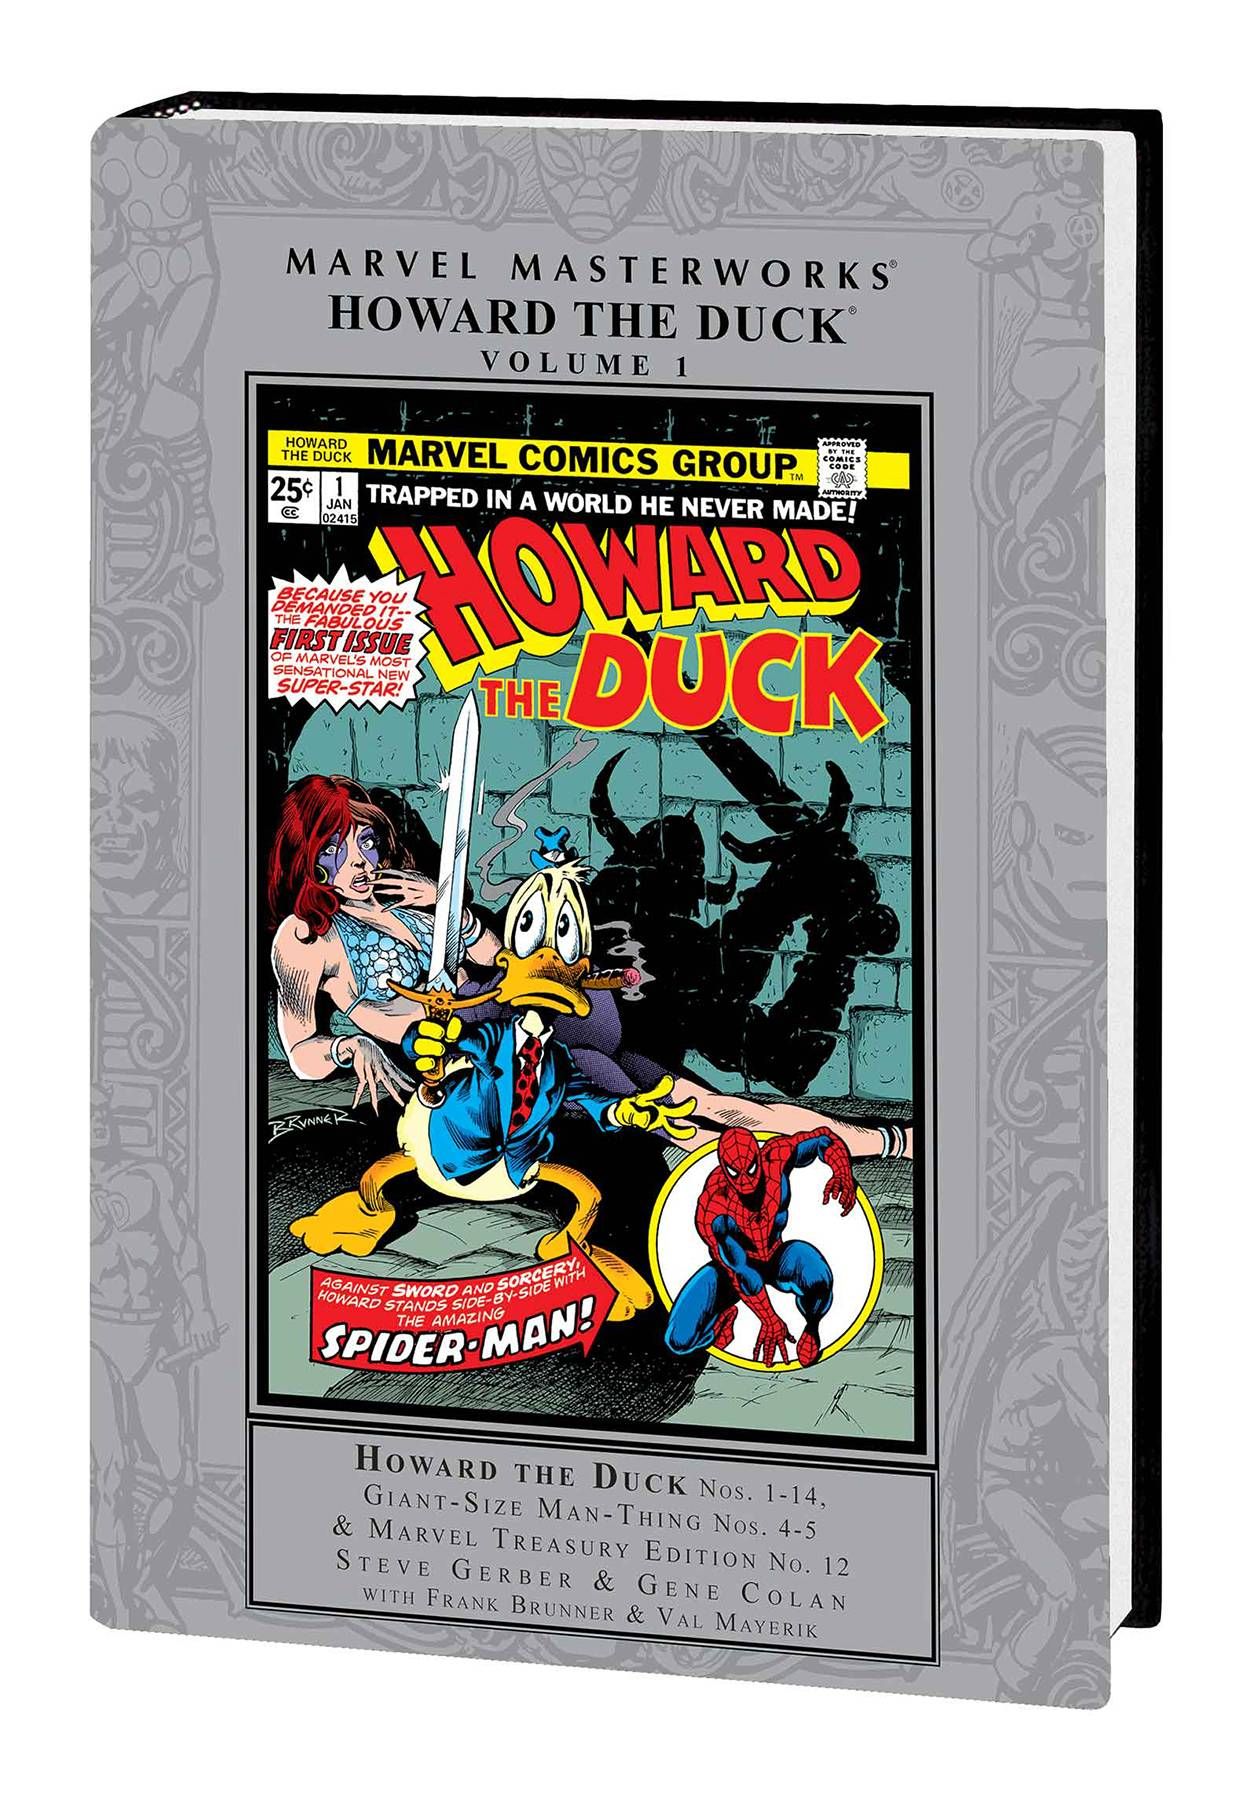 MMW HOWARD THE DUCK HC VOL 01